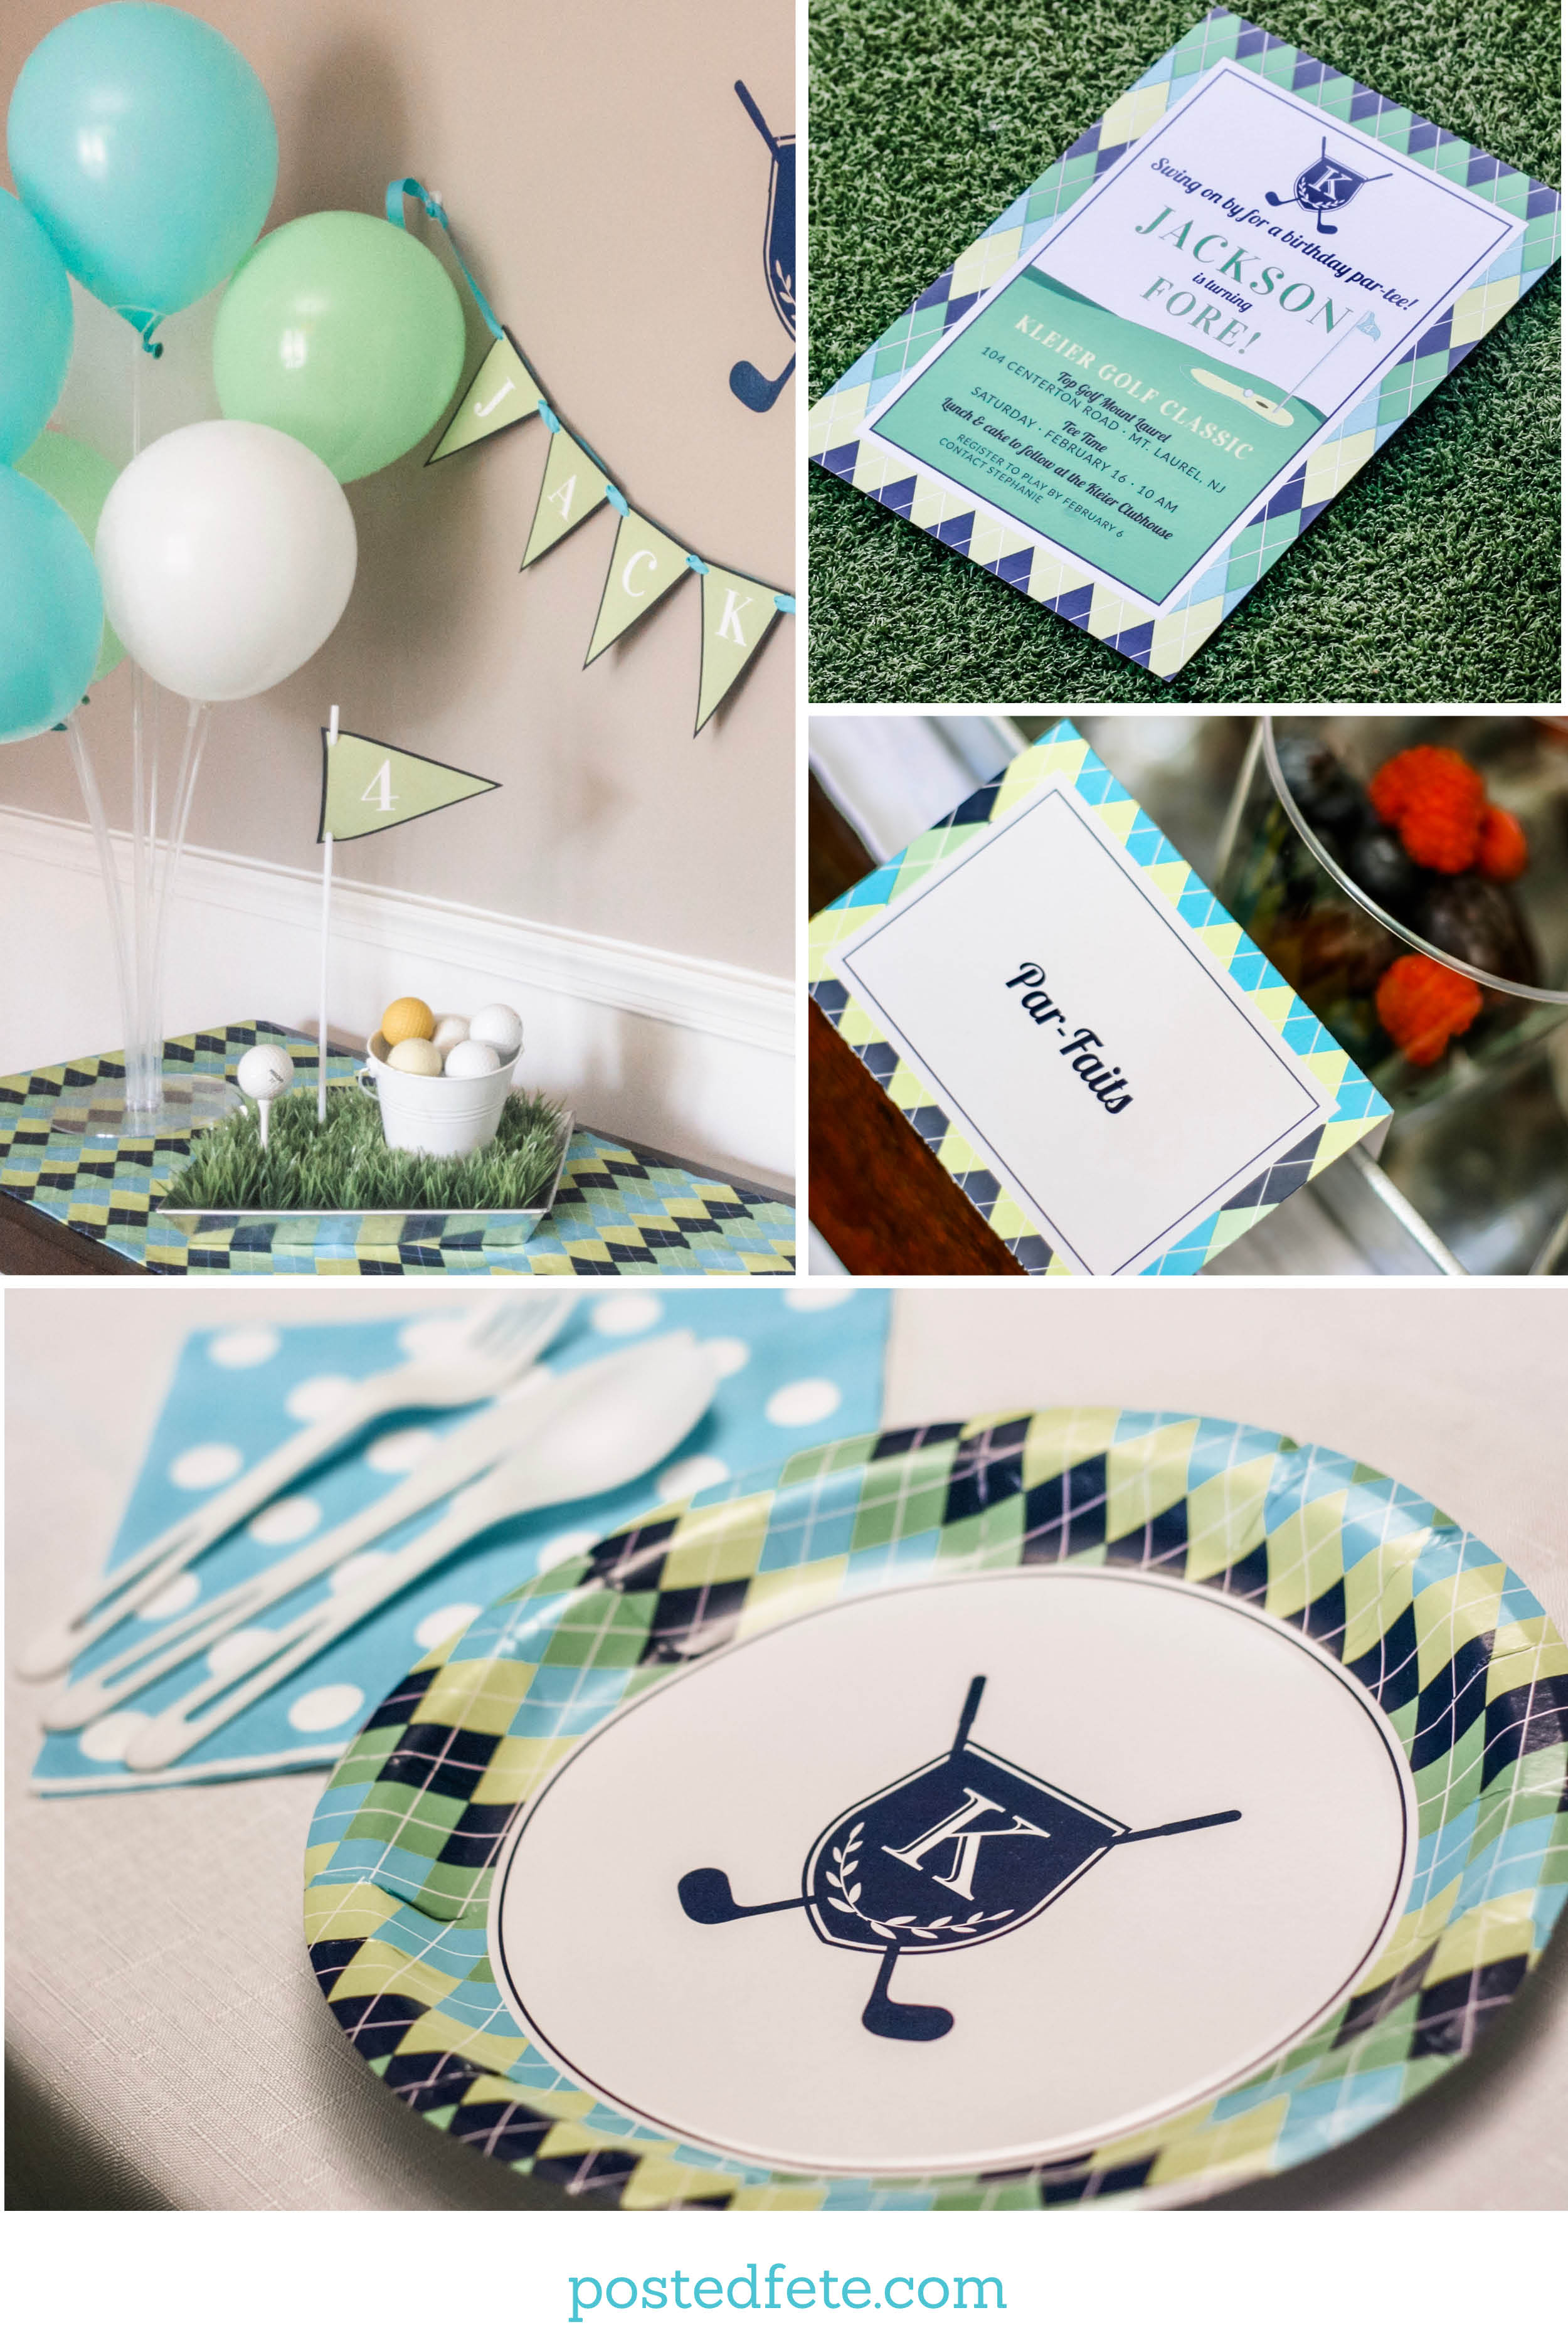 Golf Birthday Party Ideas | Golf Theme Blue, Green and Aqua Argyle Decorations and Stationery  | By Posted Fete | #GolfParty